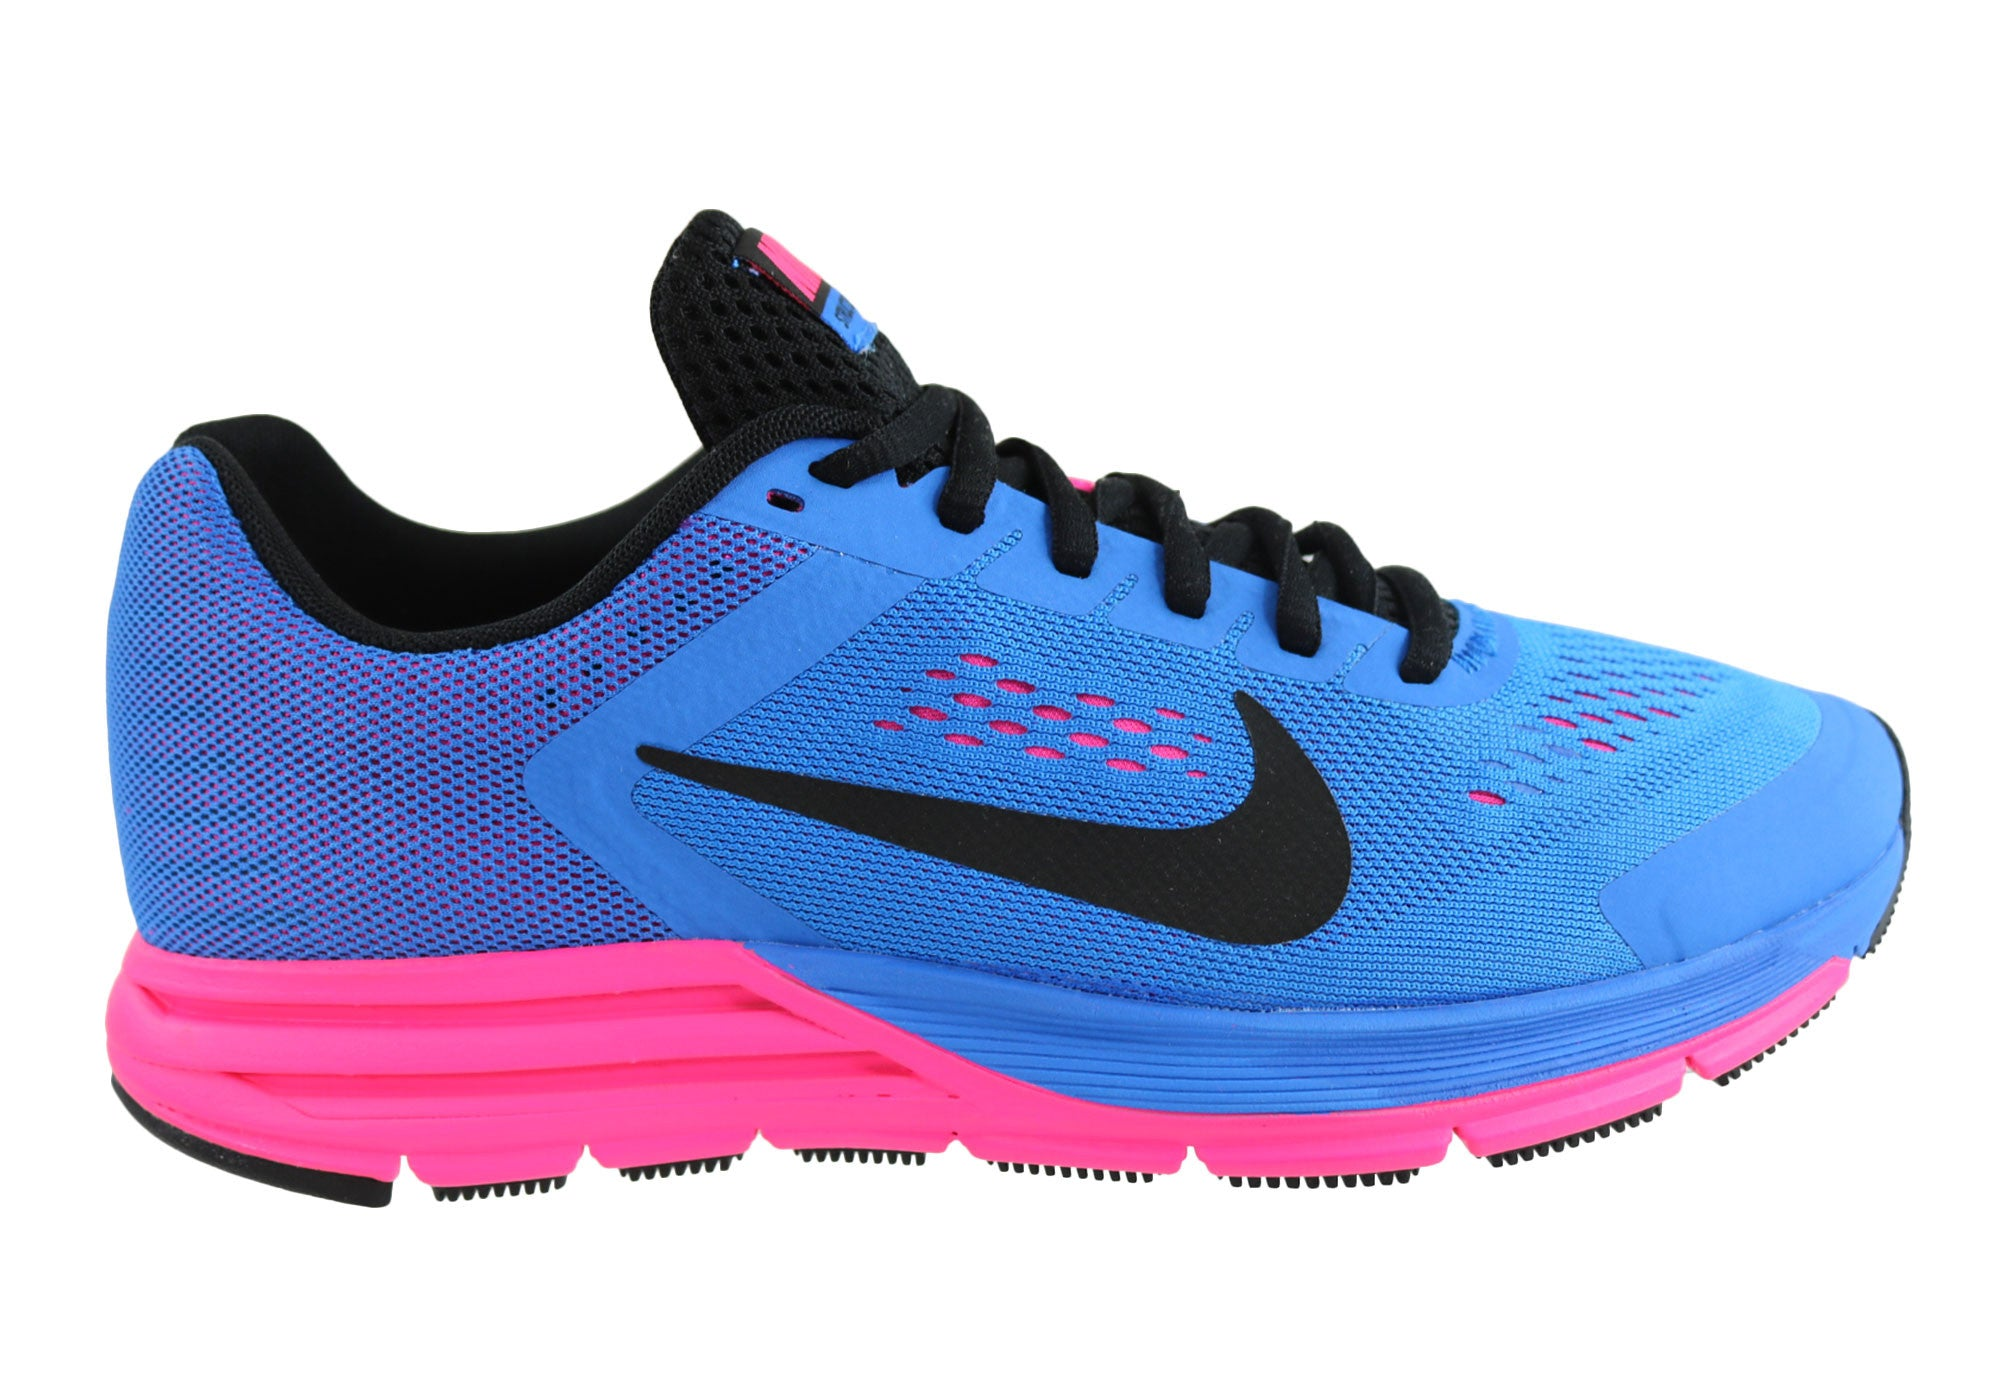 Descenso repentino Respectivamente Fundación  Nike Zoom Structure+ 17 Womens Comfortable Running Shoes | Brand House  Direct